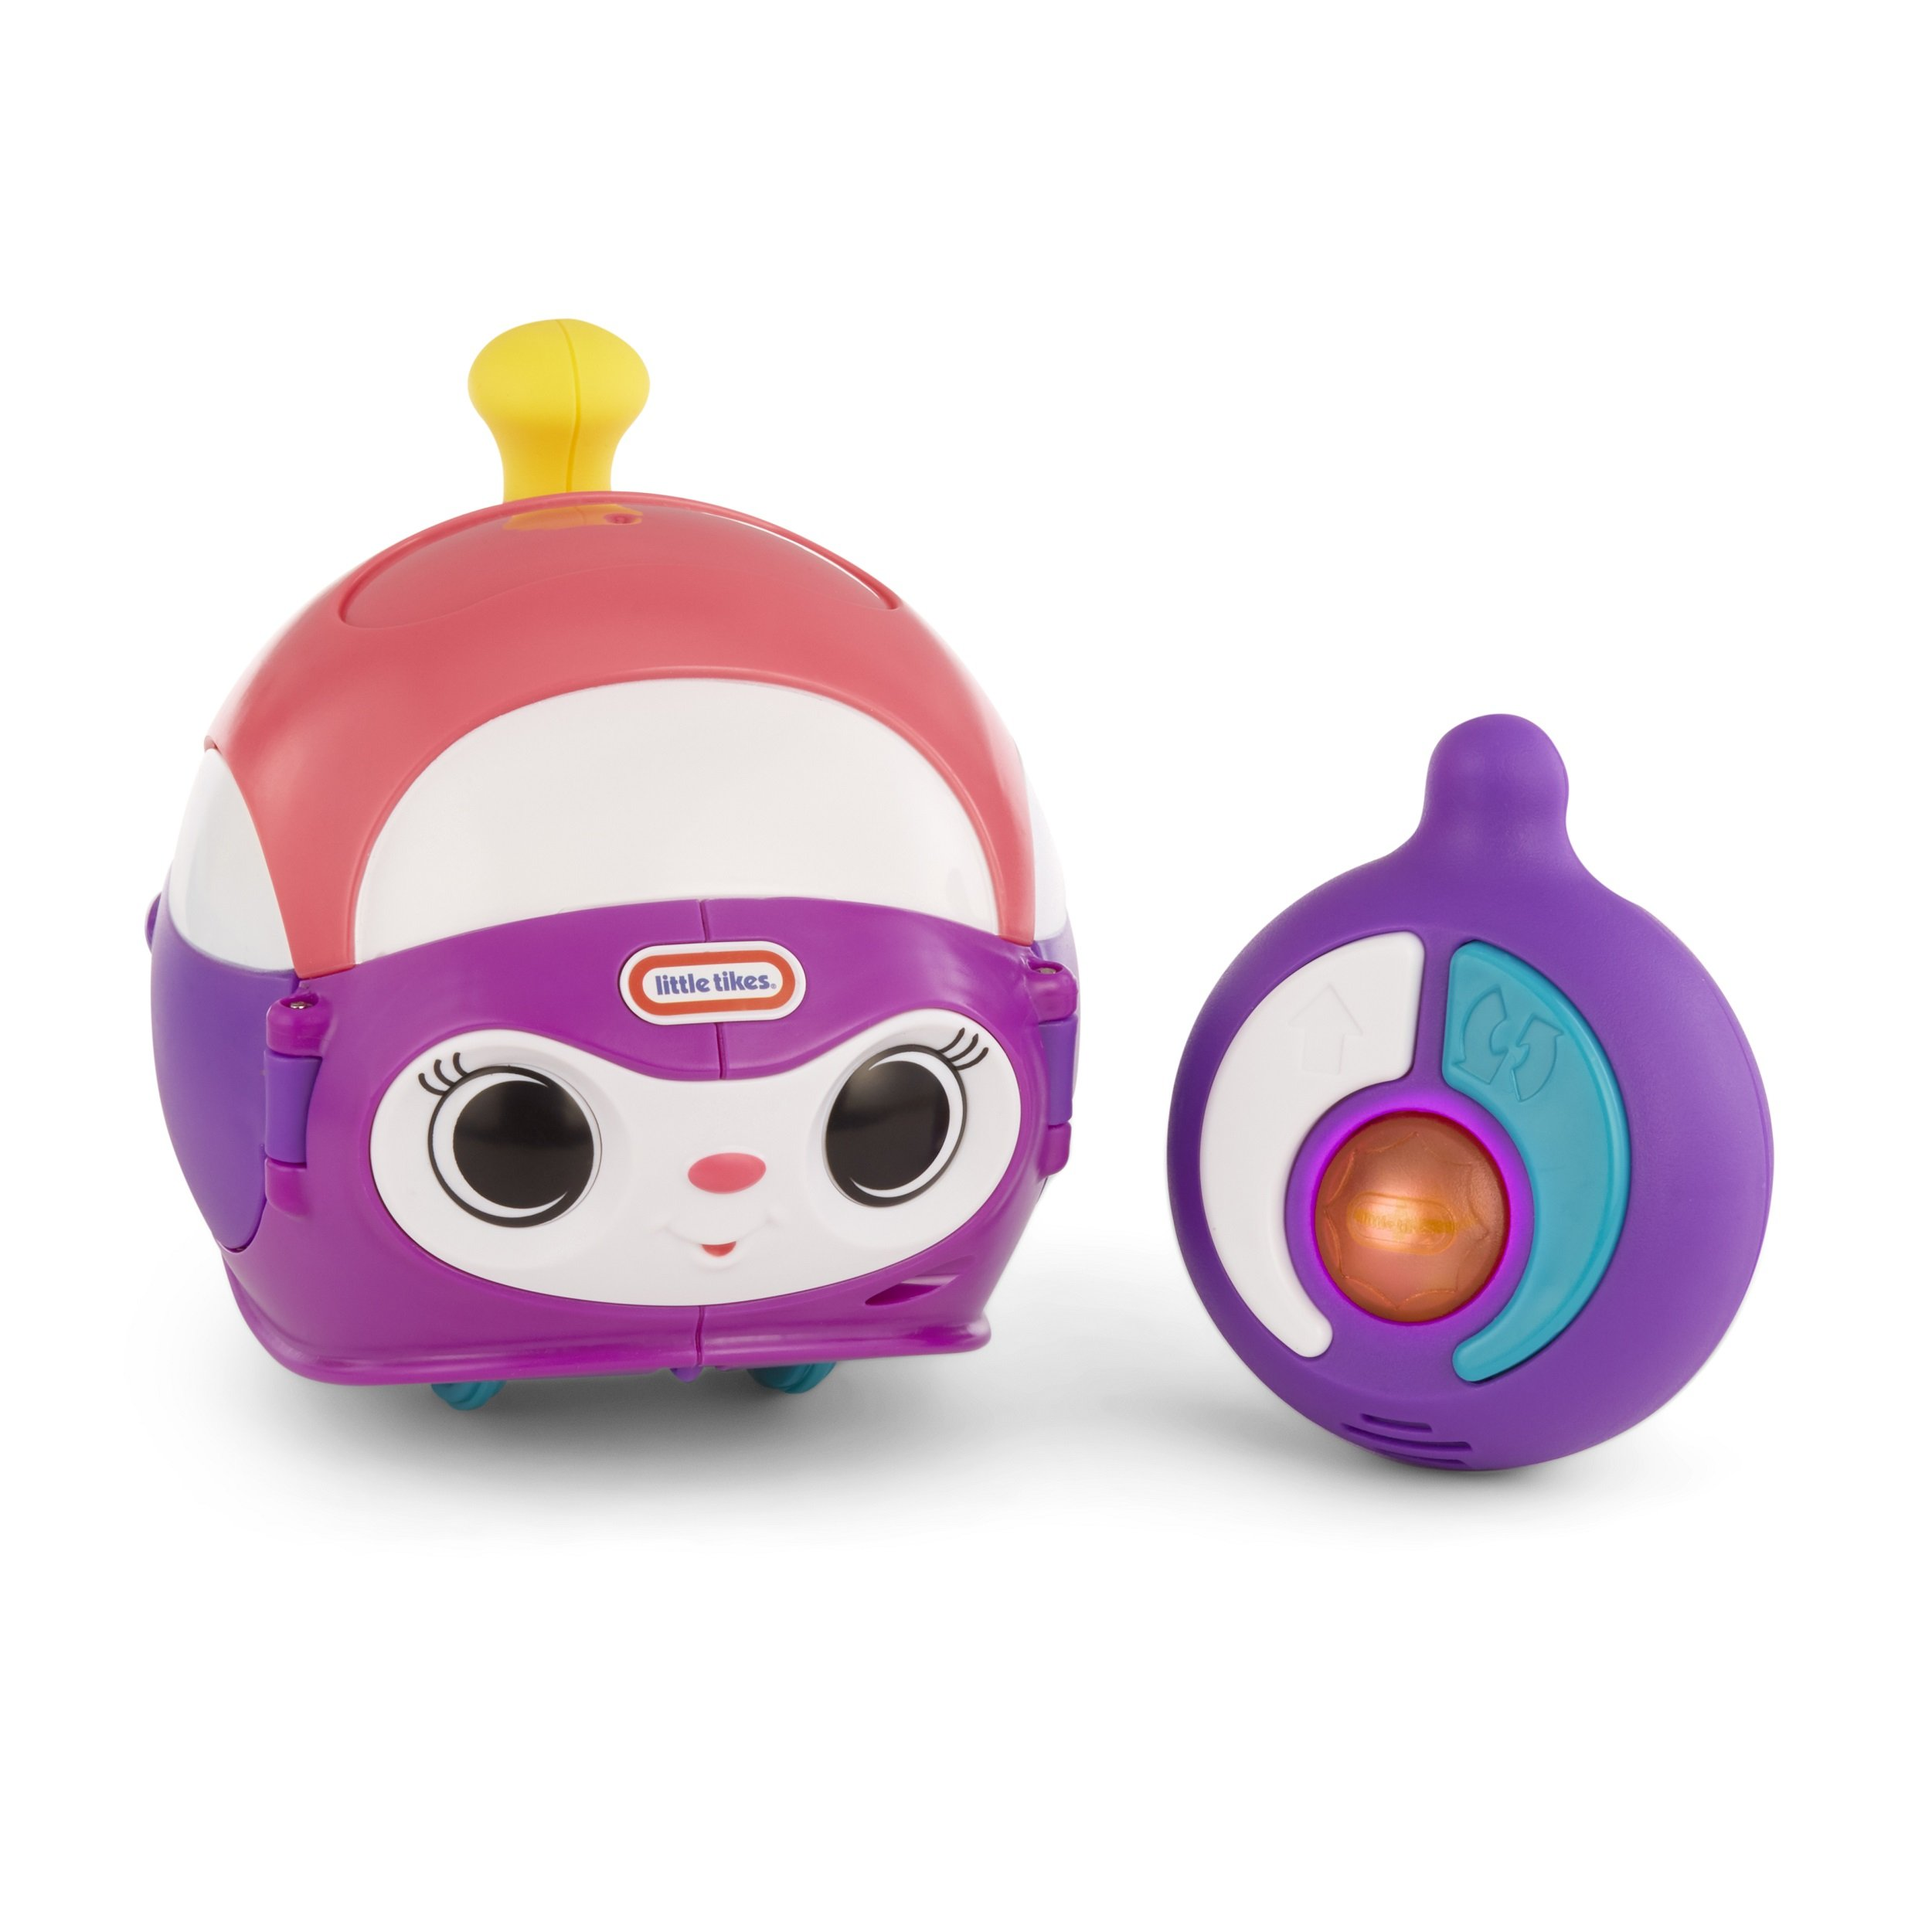 Little Tikes Spinning Rc Pink Toy, Multicolor